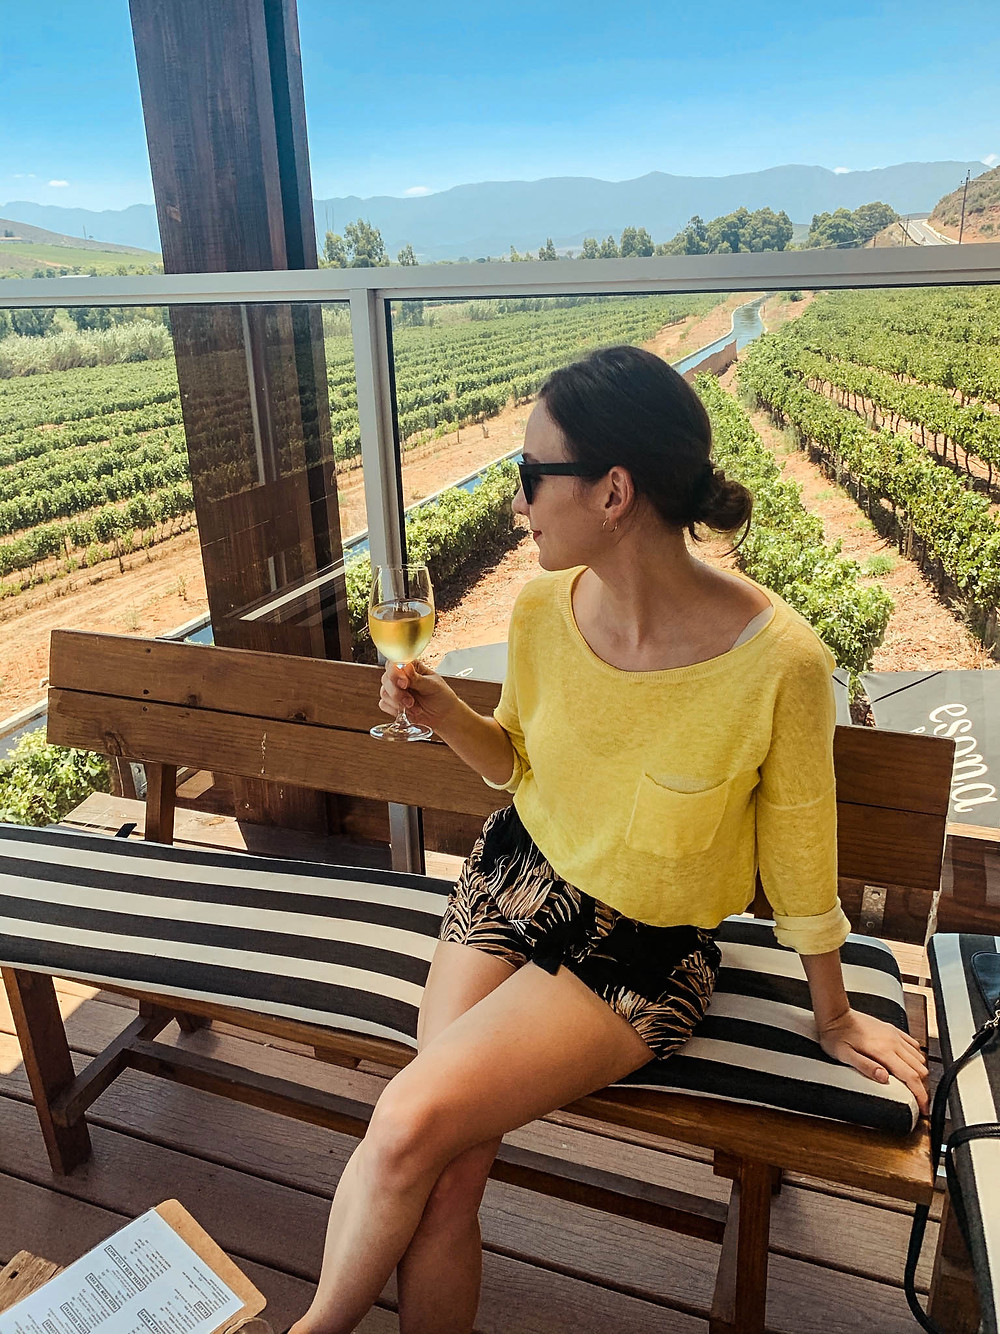 At Esona - one of several tastings along South Africa's Route 62